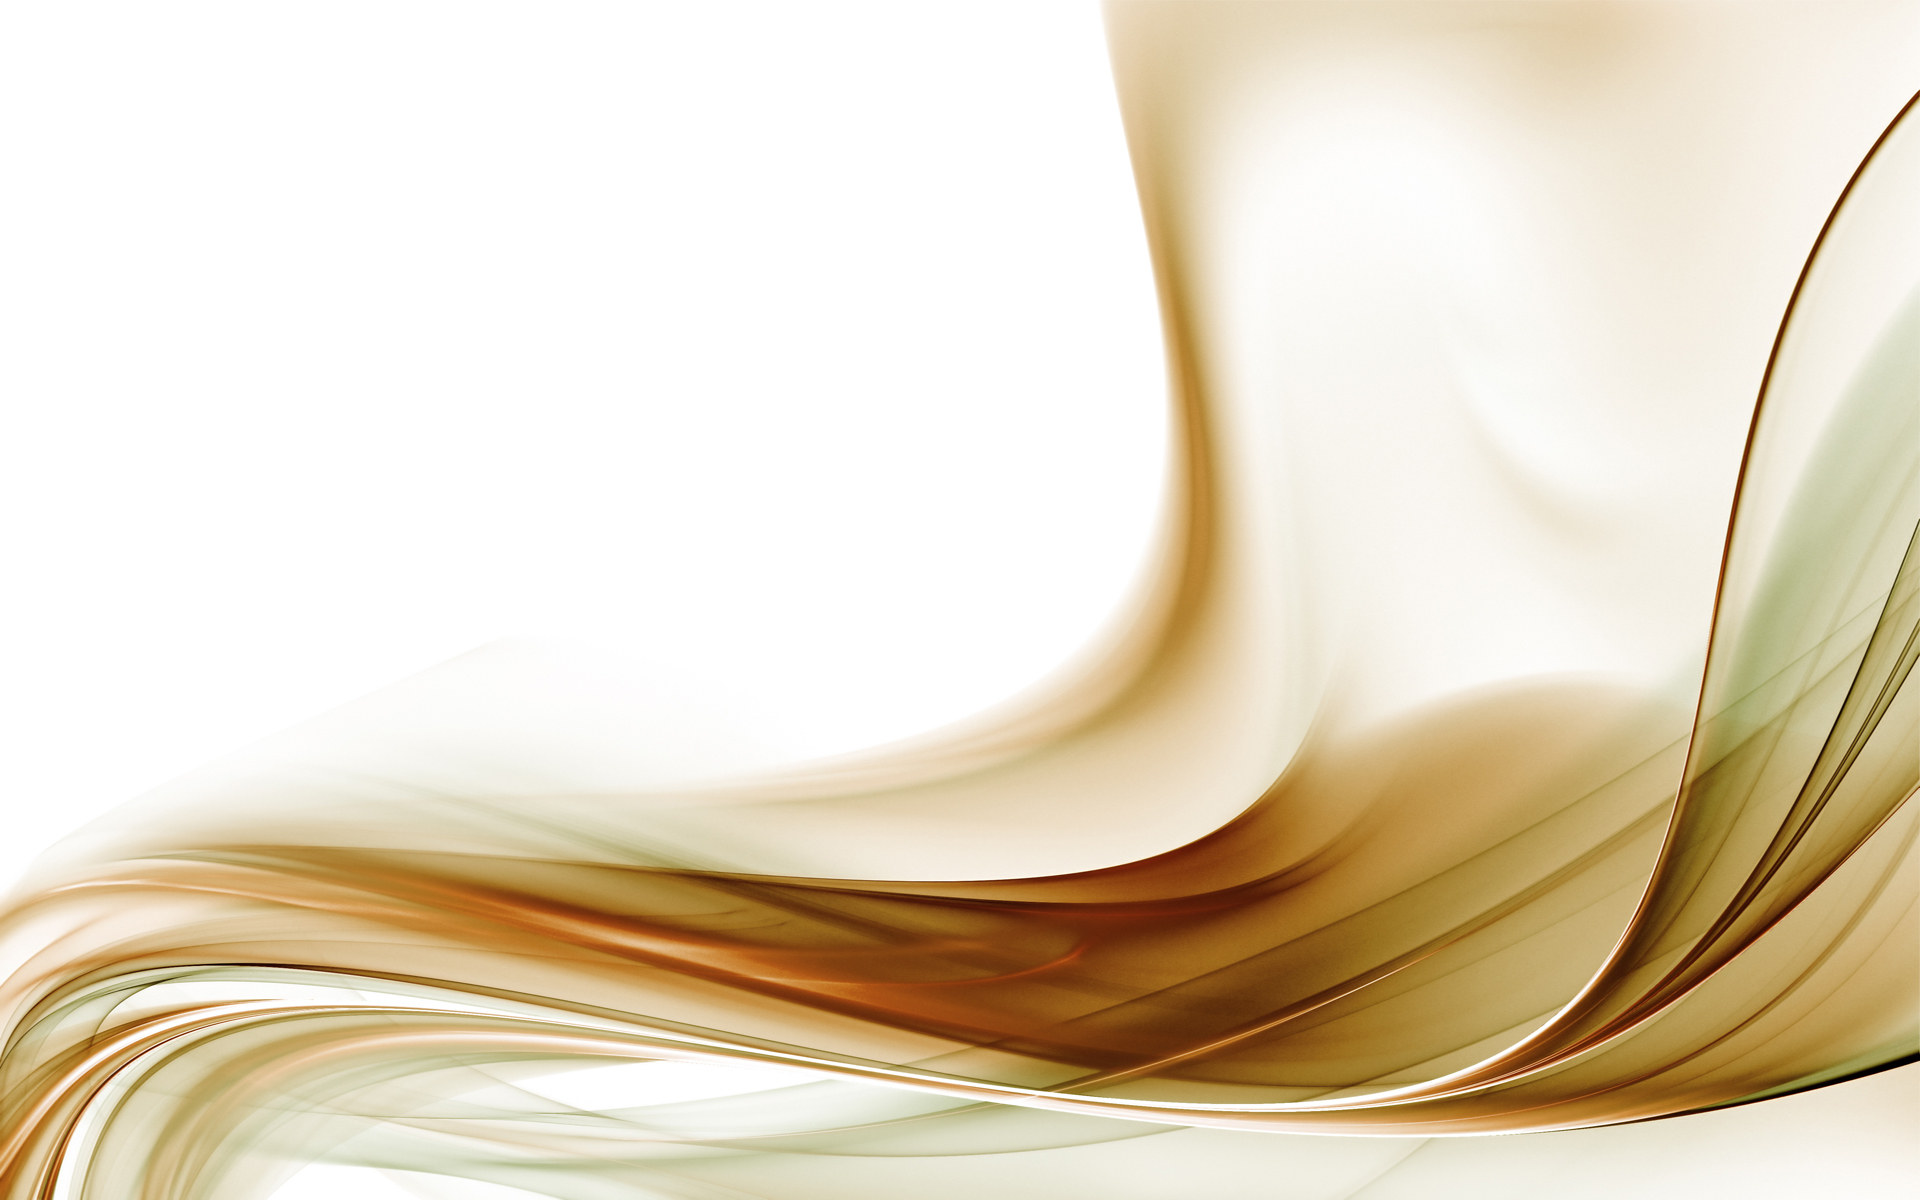 wallpaper 96264 Gold Abstract With White Background HD Wallpaper Image 1920x1200